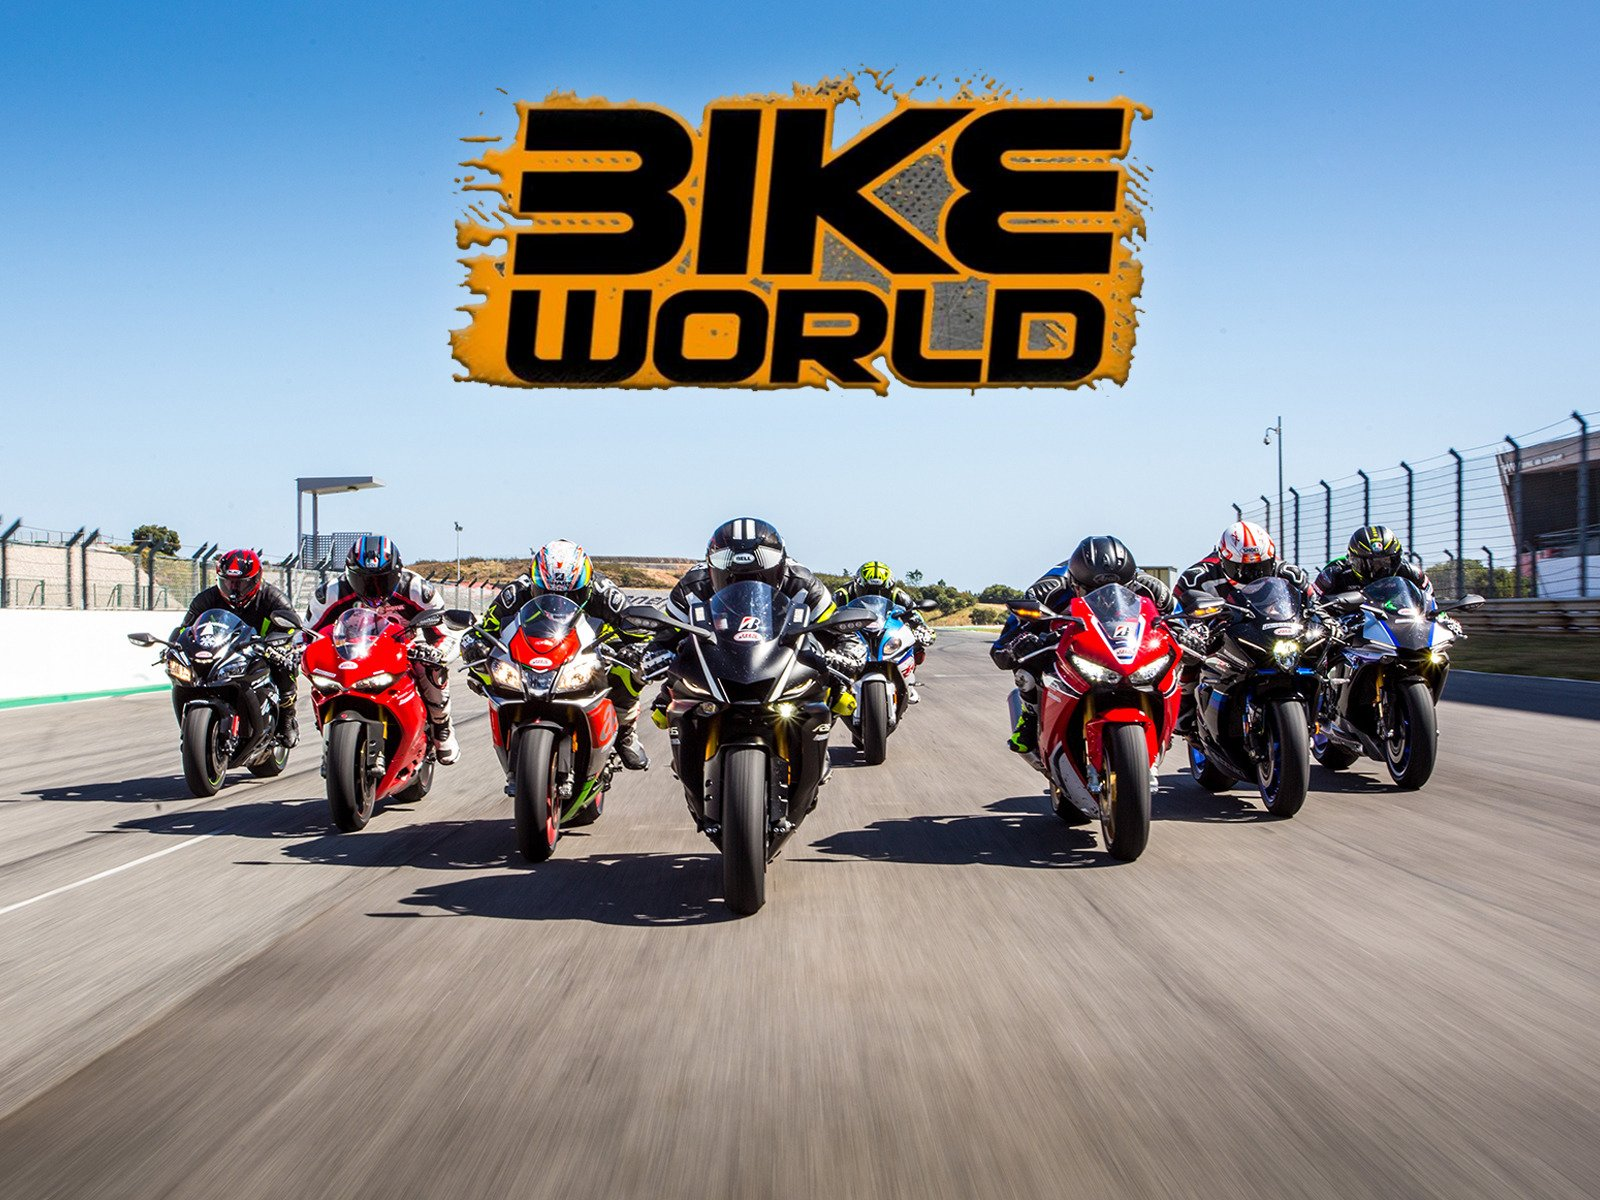 Bike World - Season 1